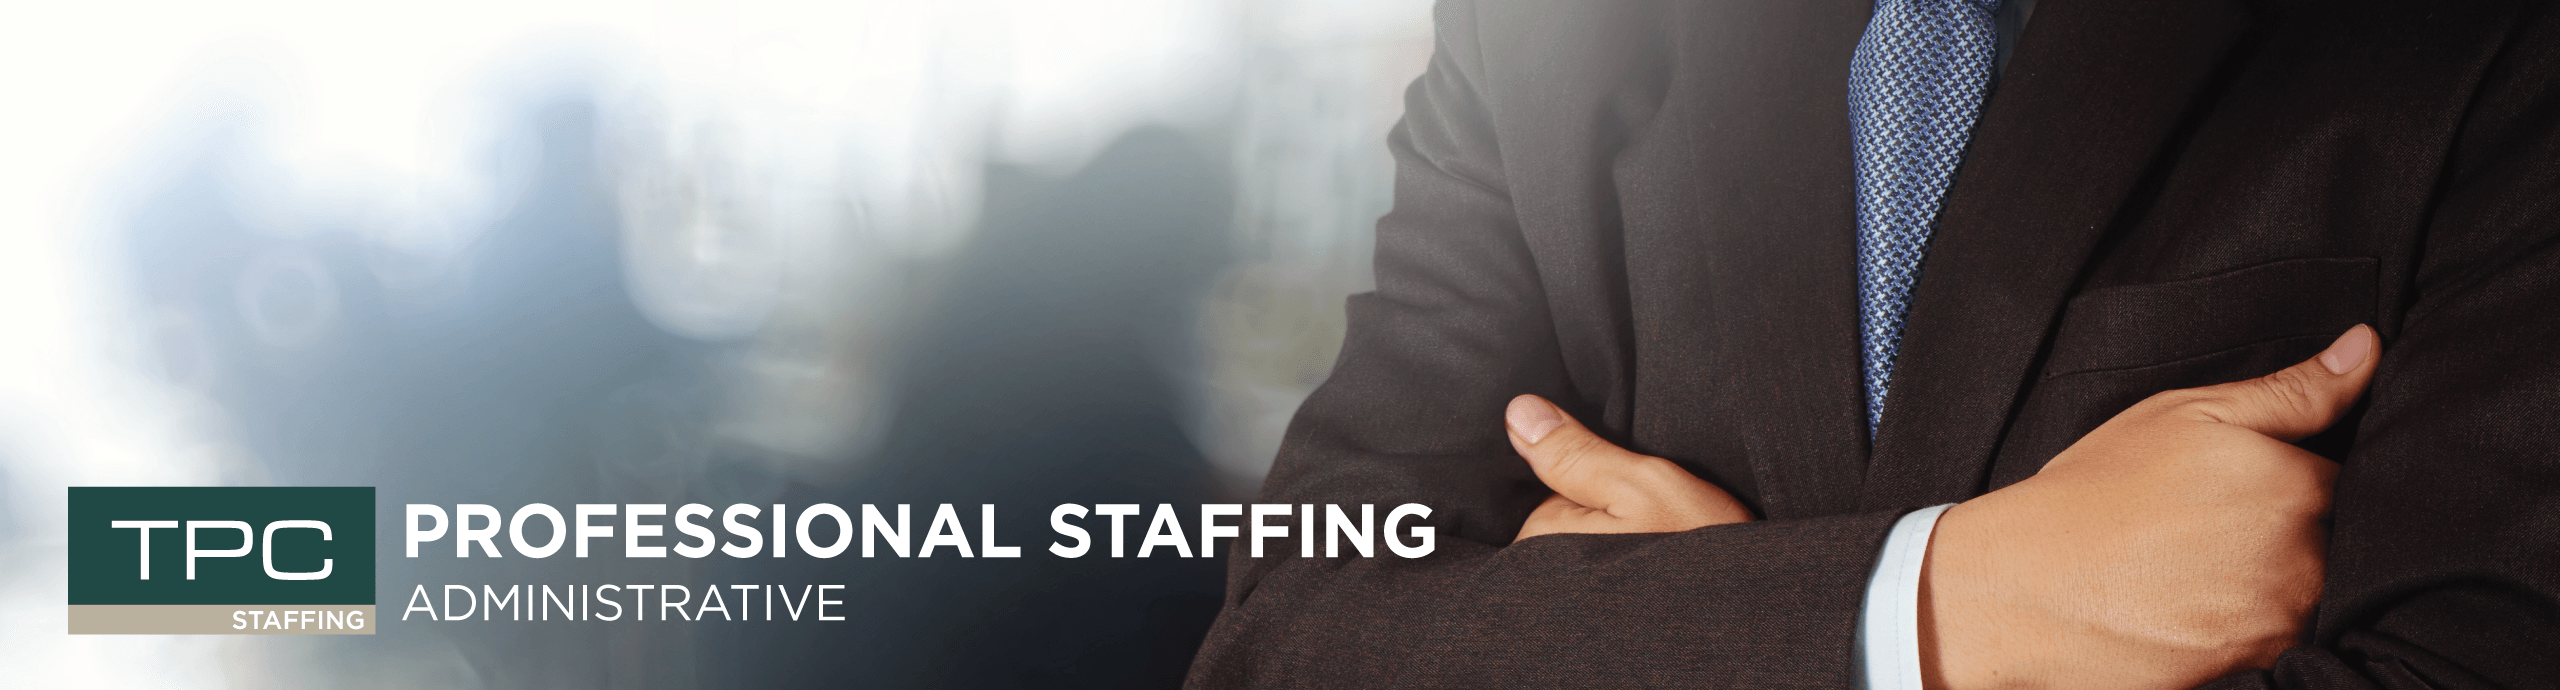 Temp Staffing Banners Edit Banners